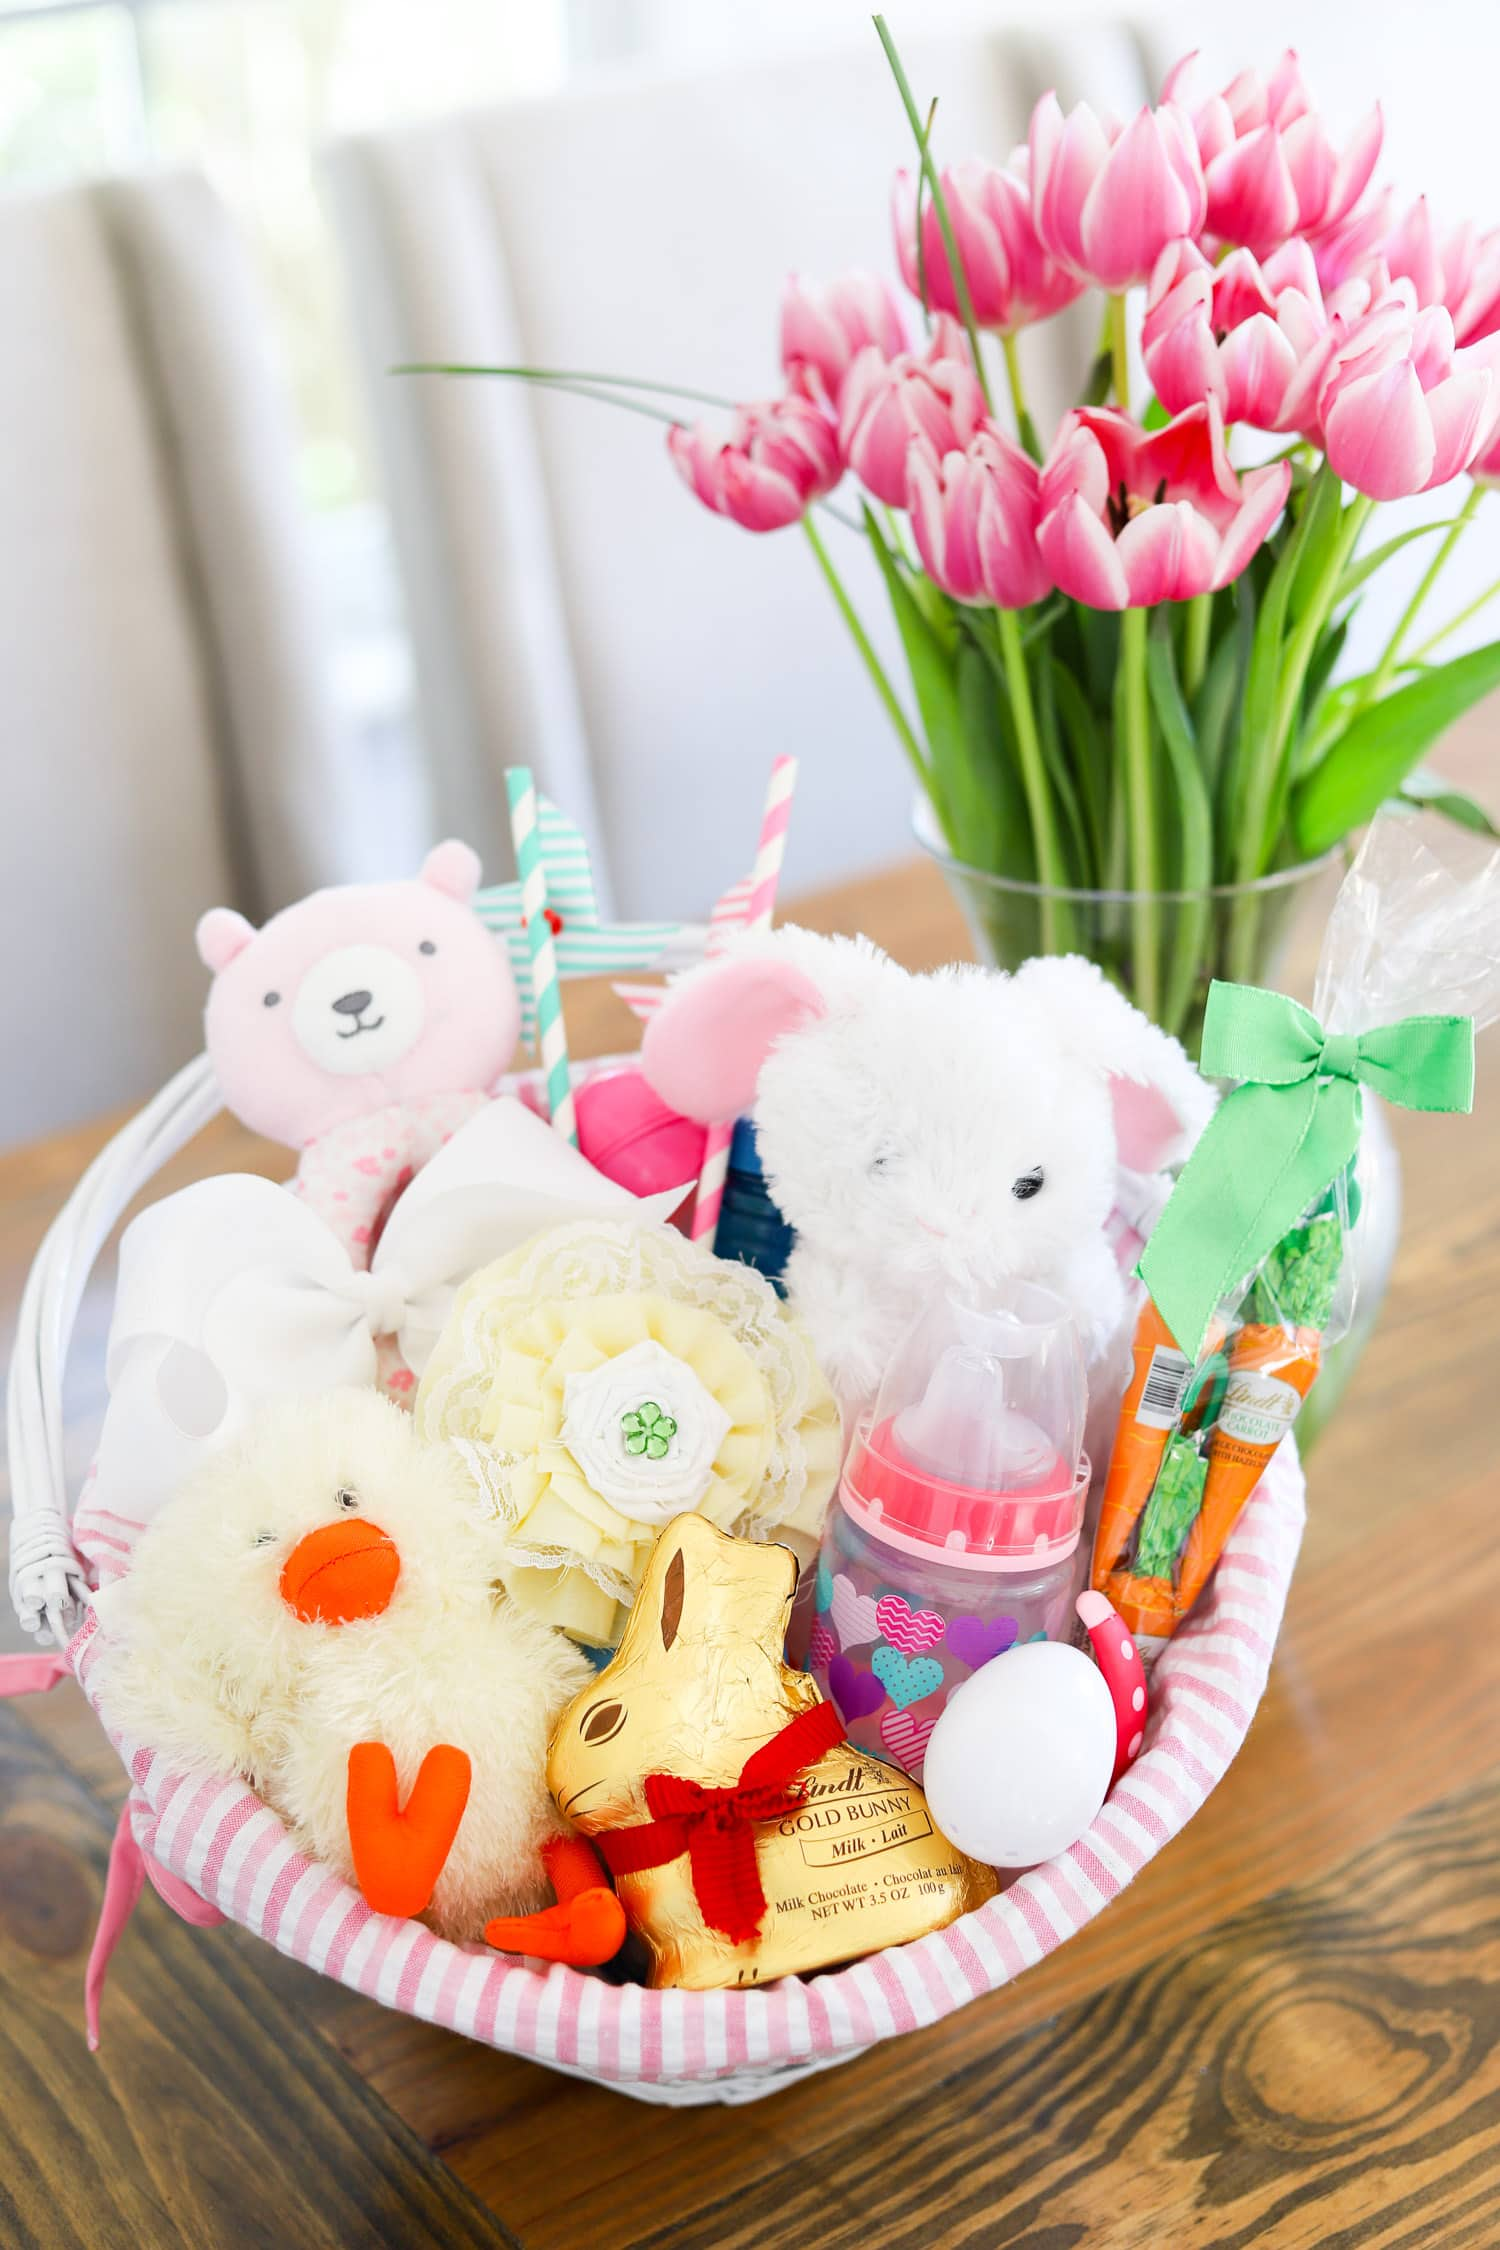 Cute easter basket ideas party favors ashley brooke nicholas cute easter party ideas lindt gold bunny easter negle Choice Image